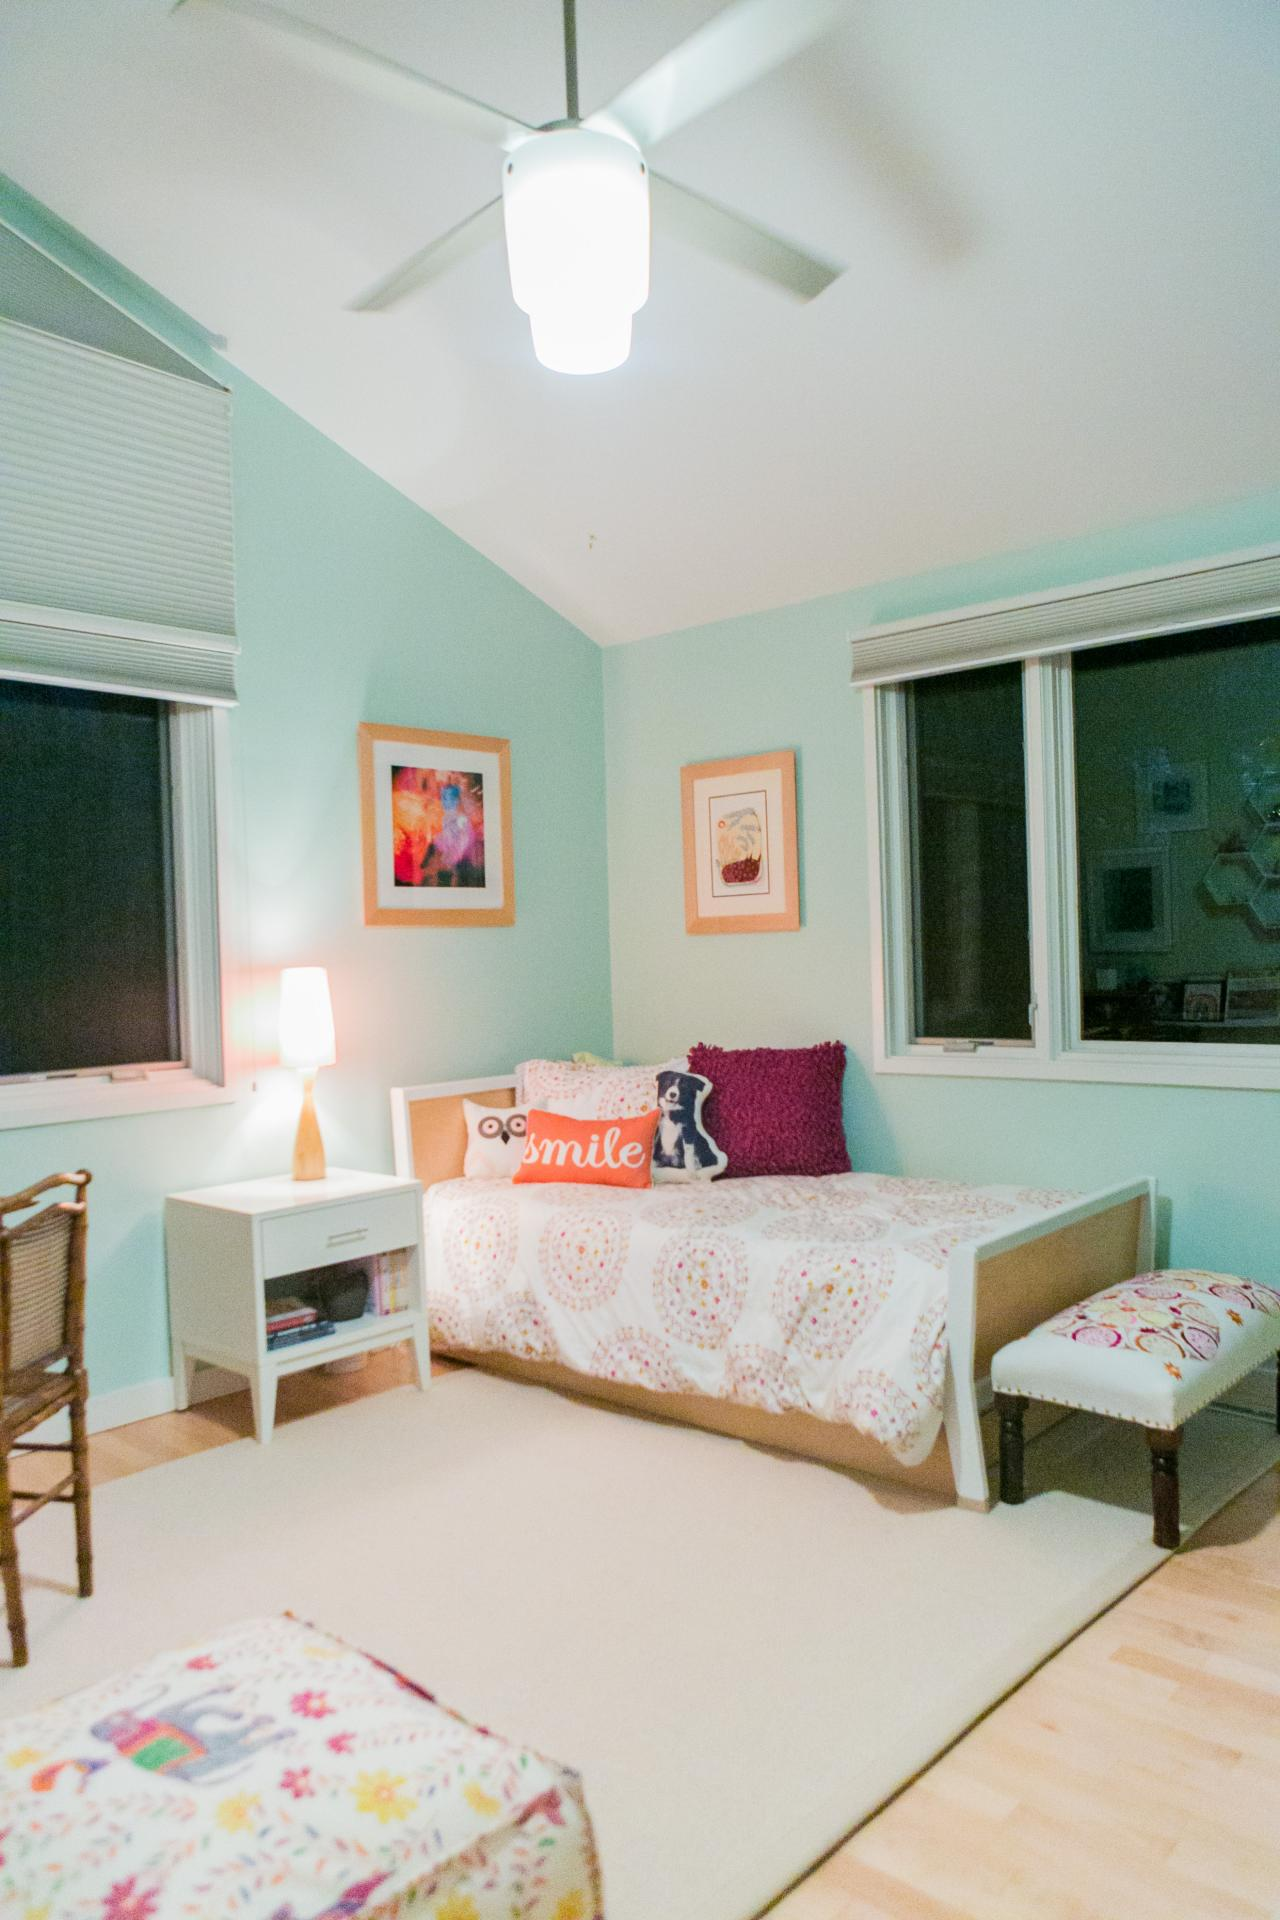 20 Midcentury Kids Room Design Ideas  Decoration Love